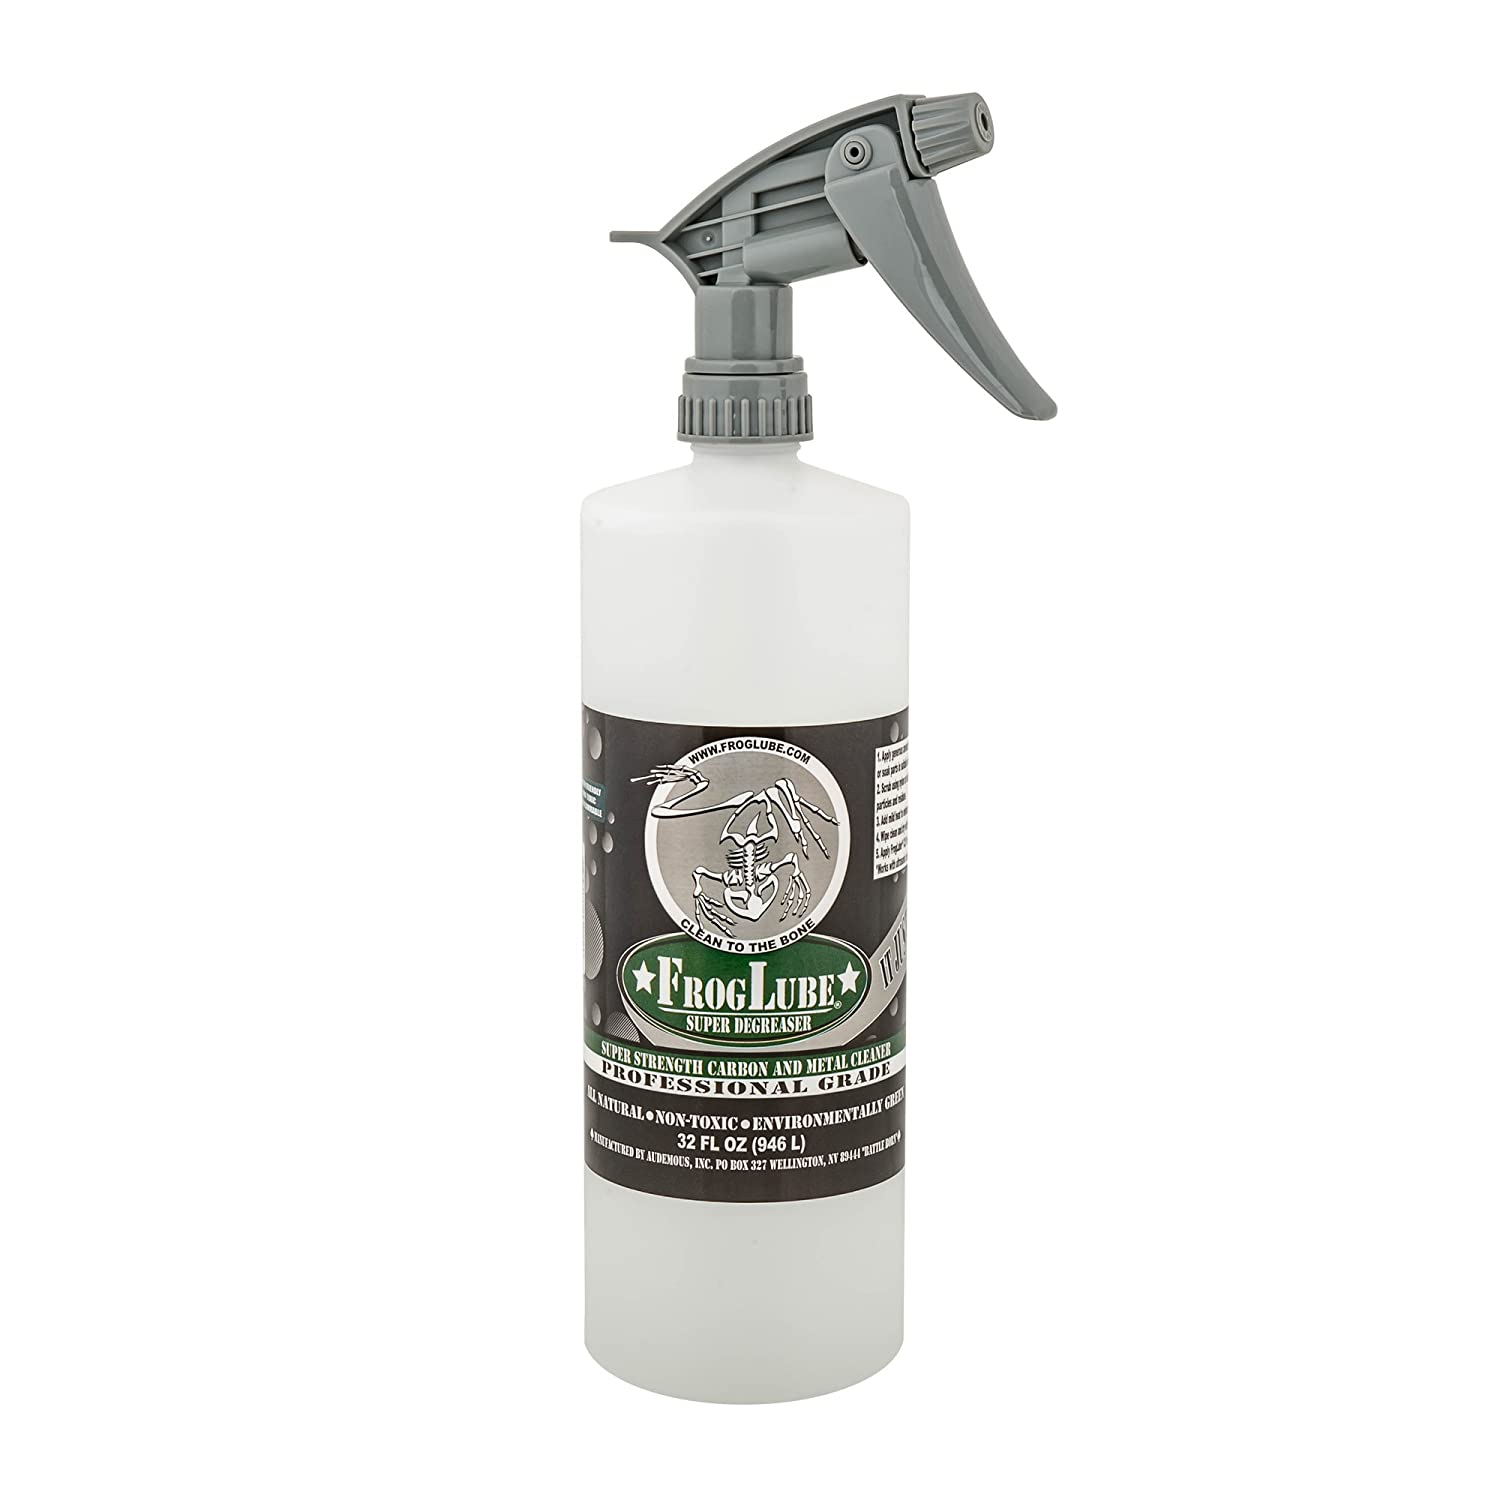 Amazon.com : Frog Lube Super Degreaser Pump Spray : Sports & Outdoors